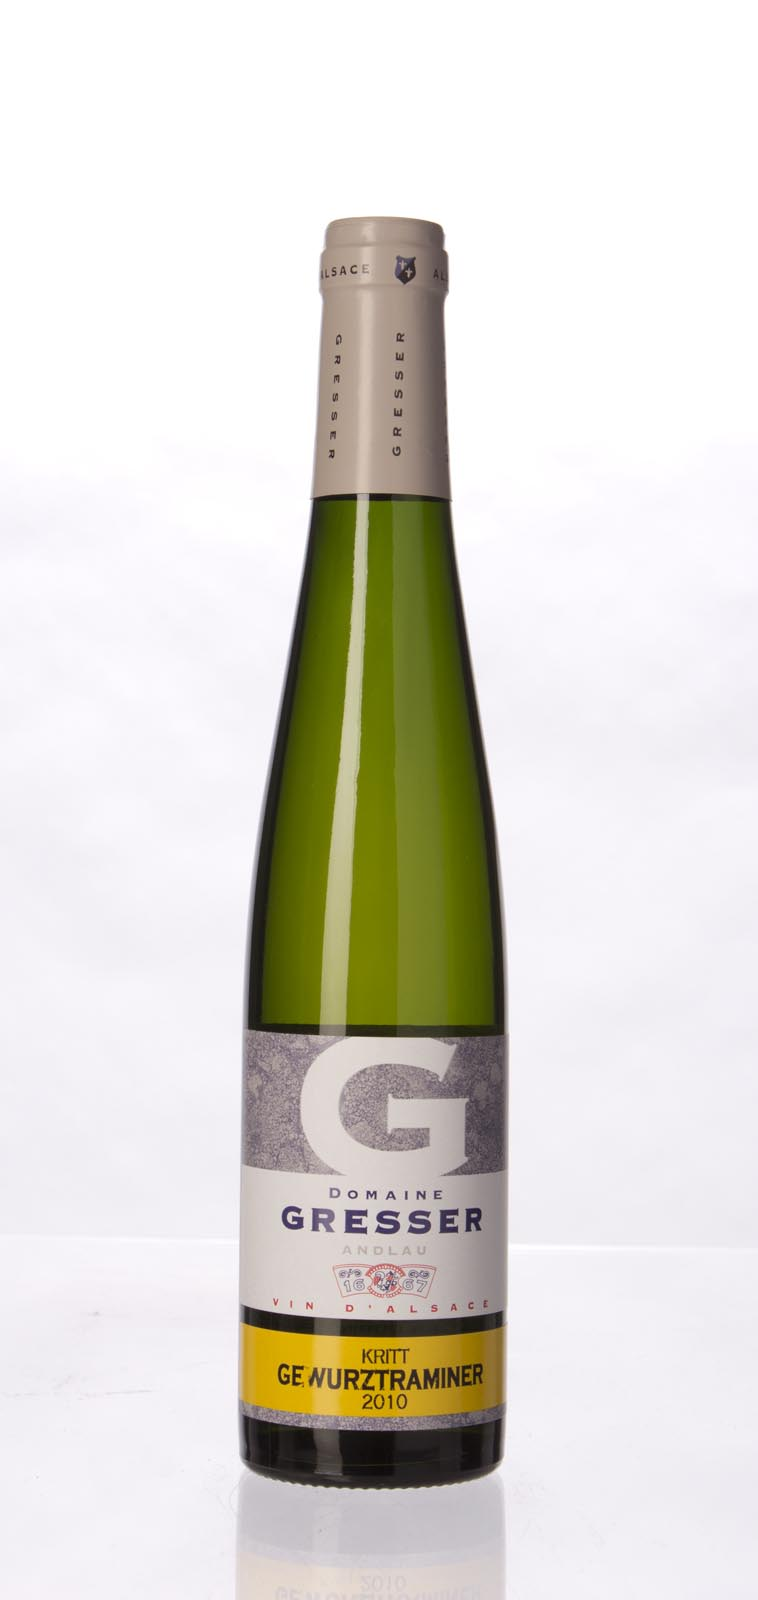 Domaine Remy Gresser Gewurztraminer Kritt 2010, 375ml () from The BPW - Merchants of rare and fine wines.